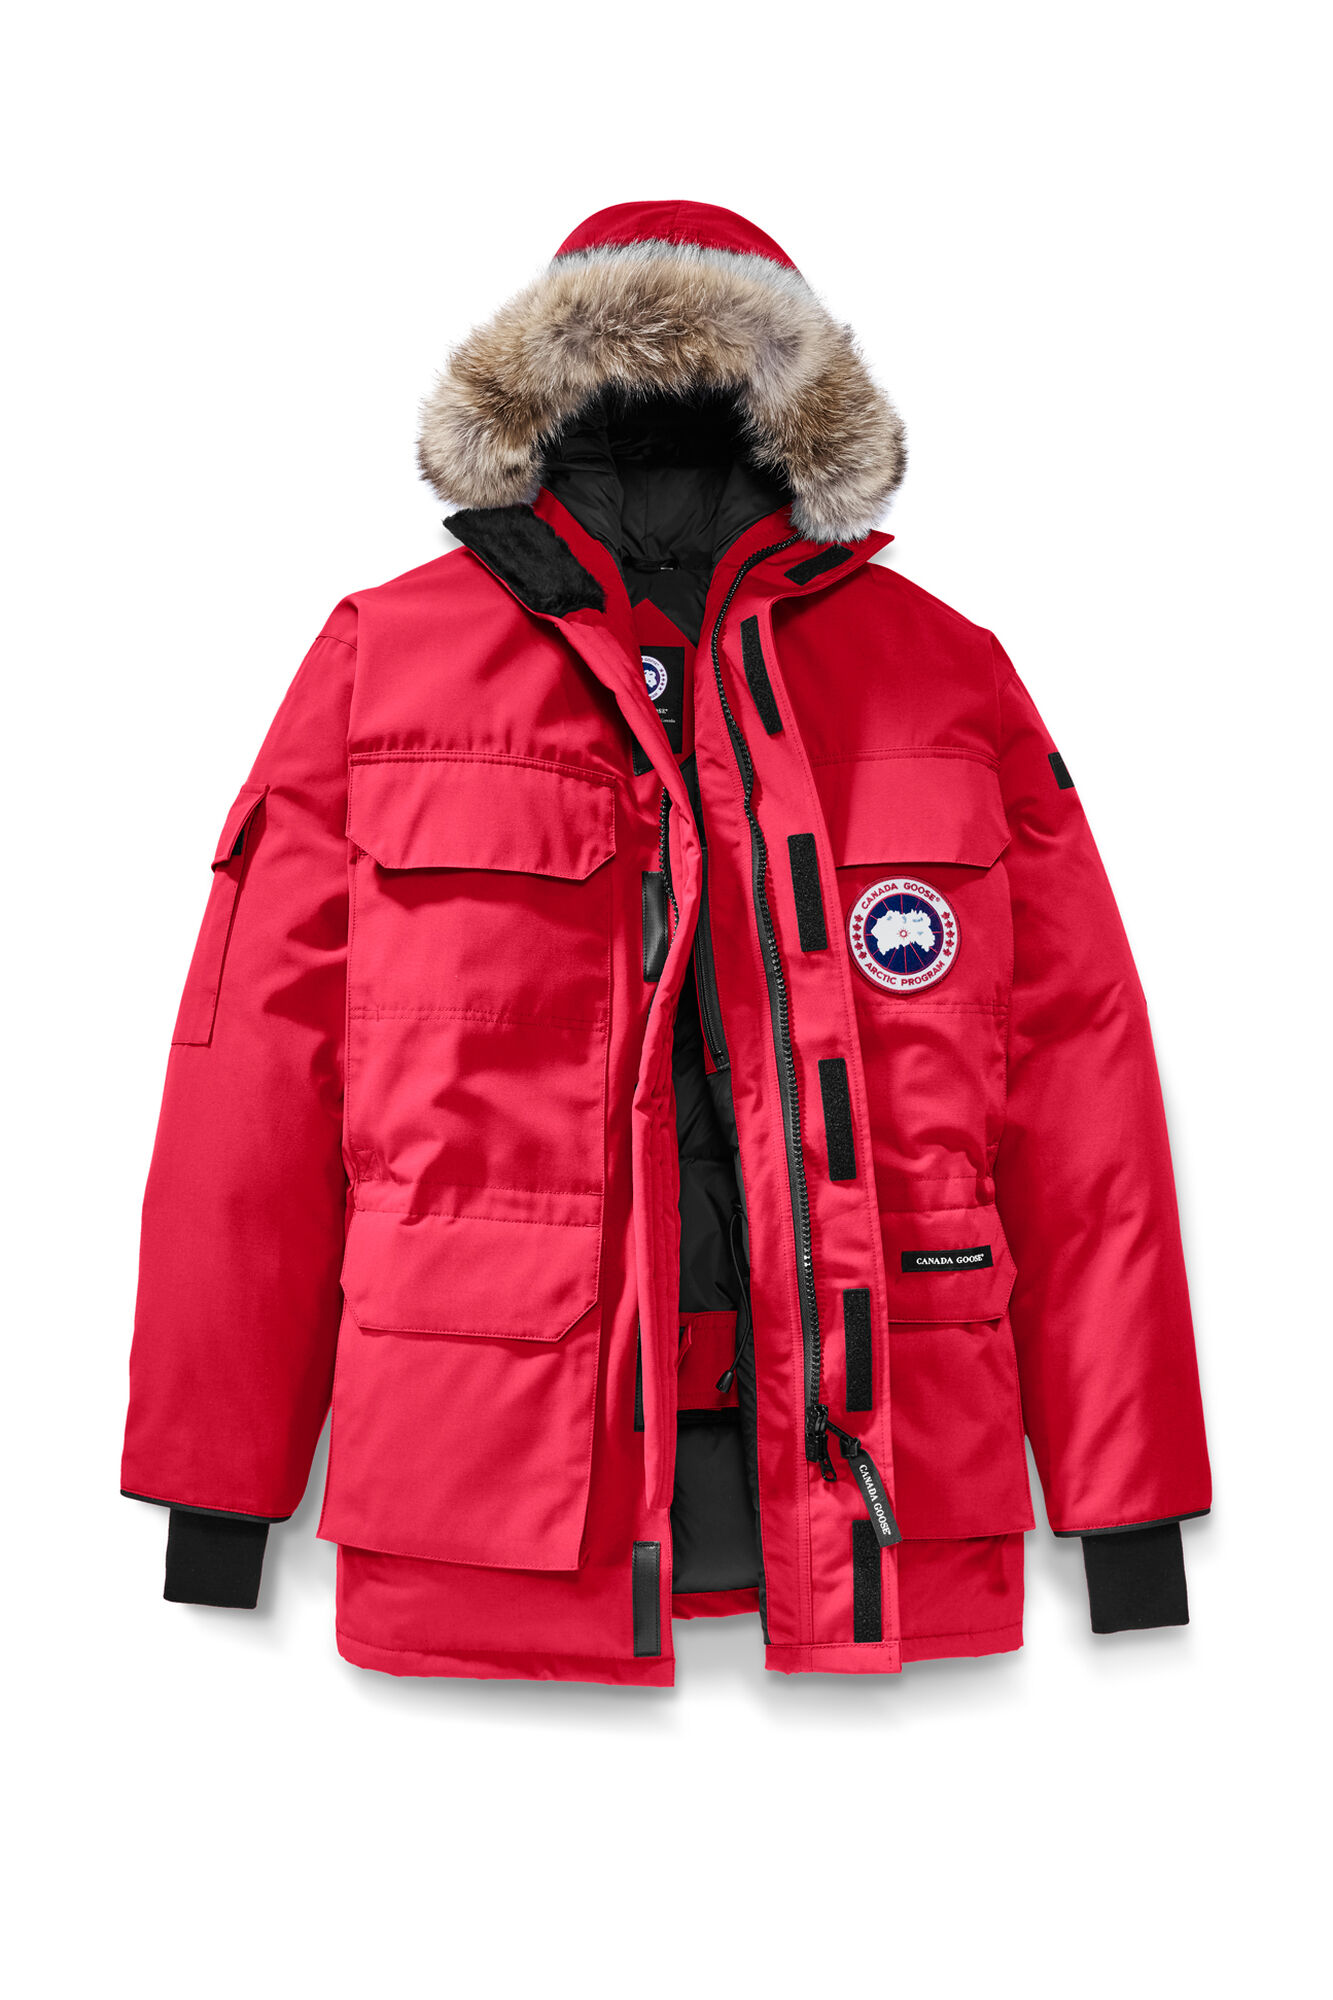 Canada Goose expedition parka replica 2016 - Men's Arctic Program Expedition Parka | Canada Goose?